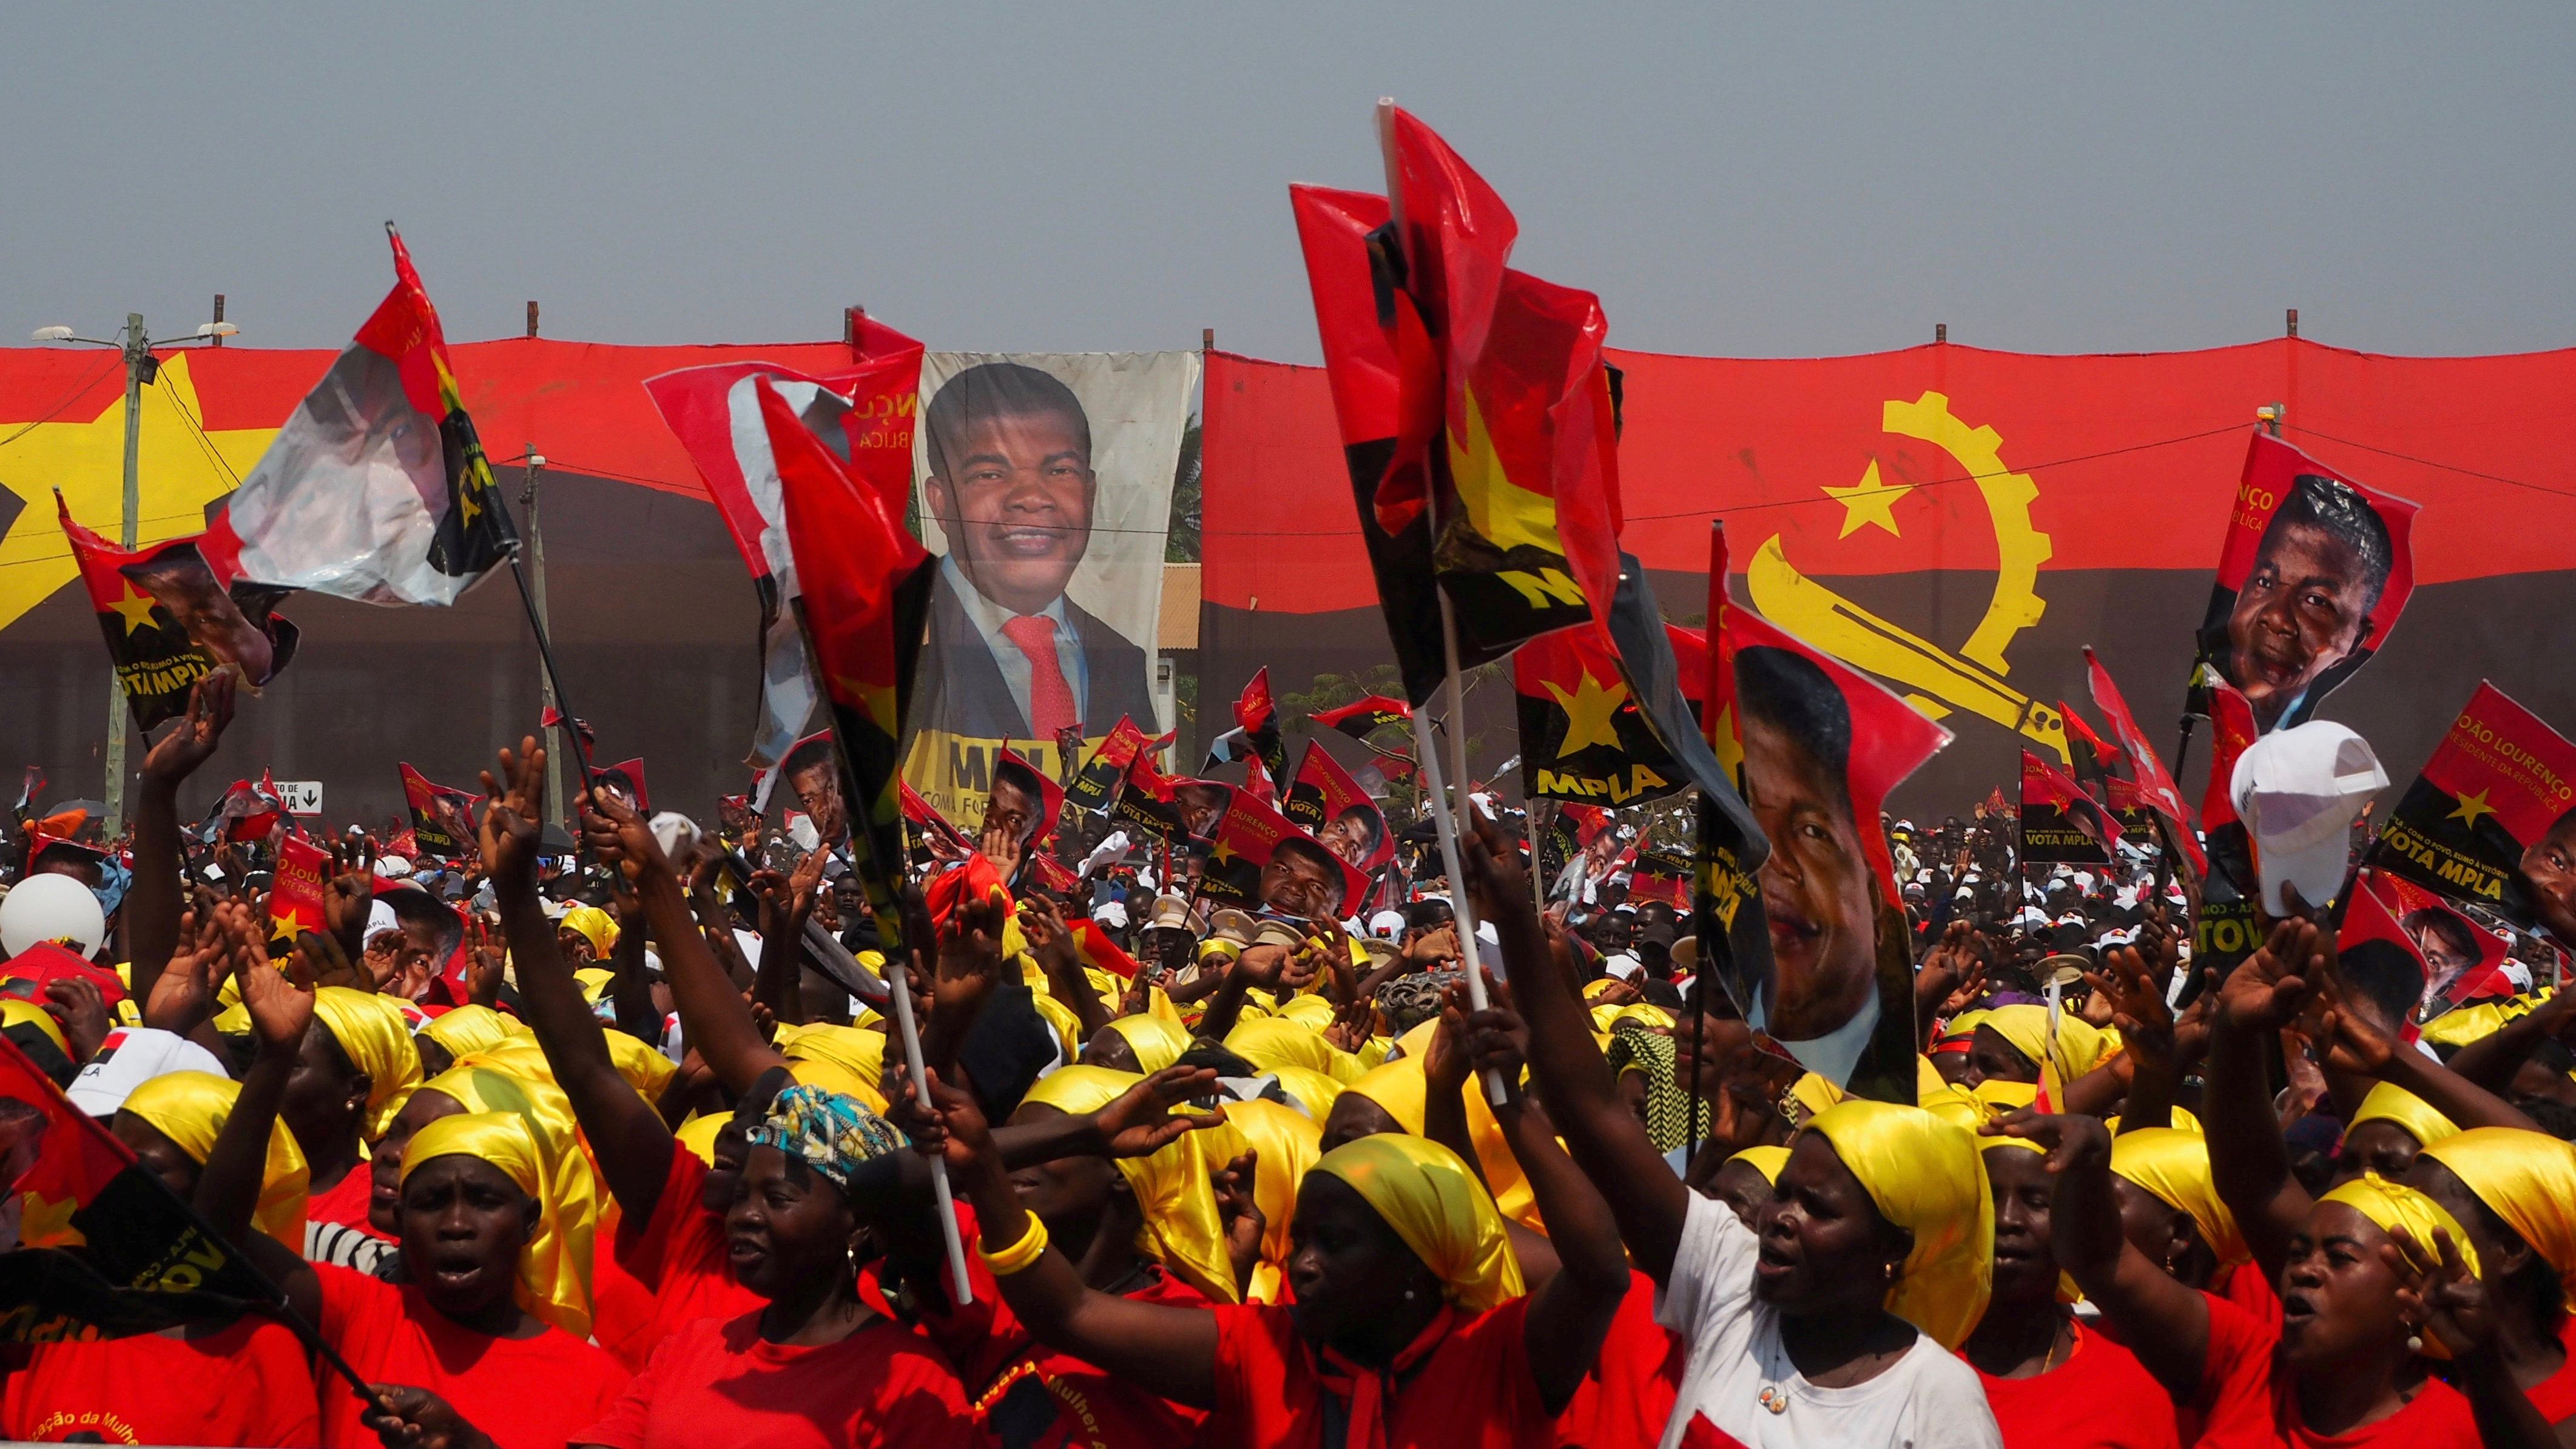 Supporters cheer as Joao Lourenco, presidential candidate for the ruling MPLA party, speaks at an election rally in Malanje, Angola, August 17, 2017. Picture taken  August 17, 2017. REUTERS/Stephen Eisenhammer FOR EDITORIAL USE ONLY. NO RESALES. NO ARCHIVES     TPX IMAGES OF THE DAY - RTS1CB66